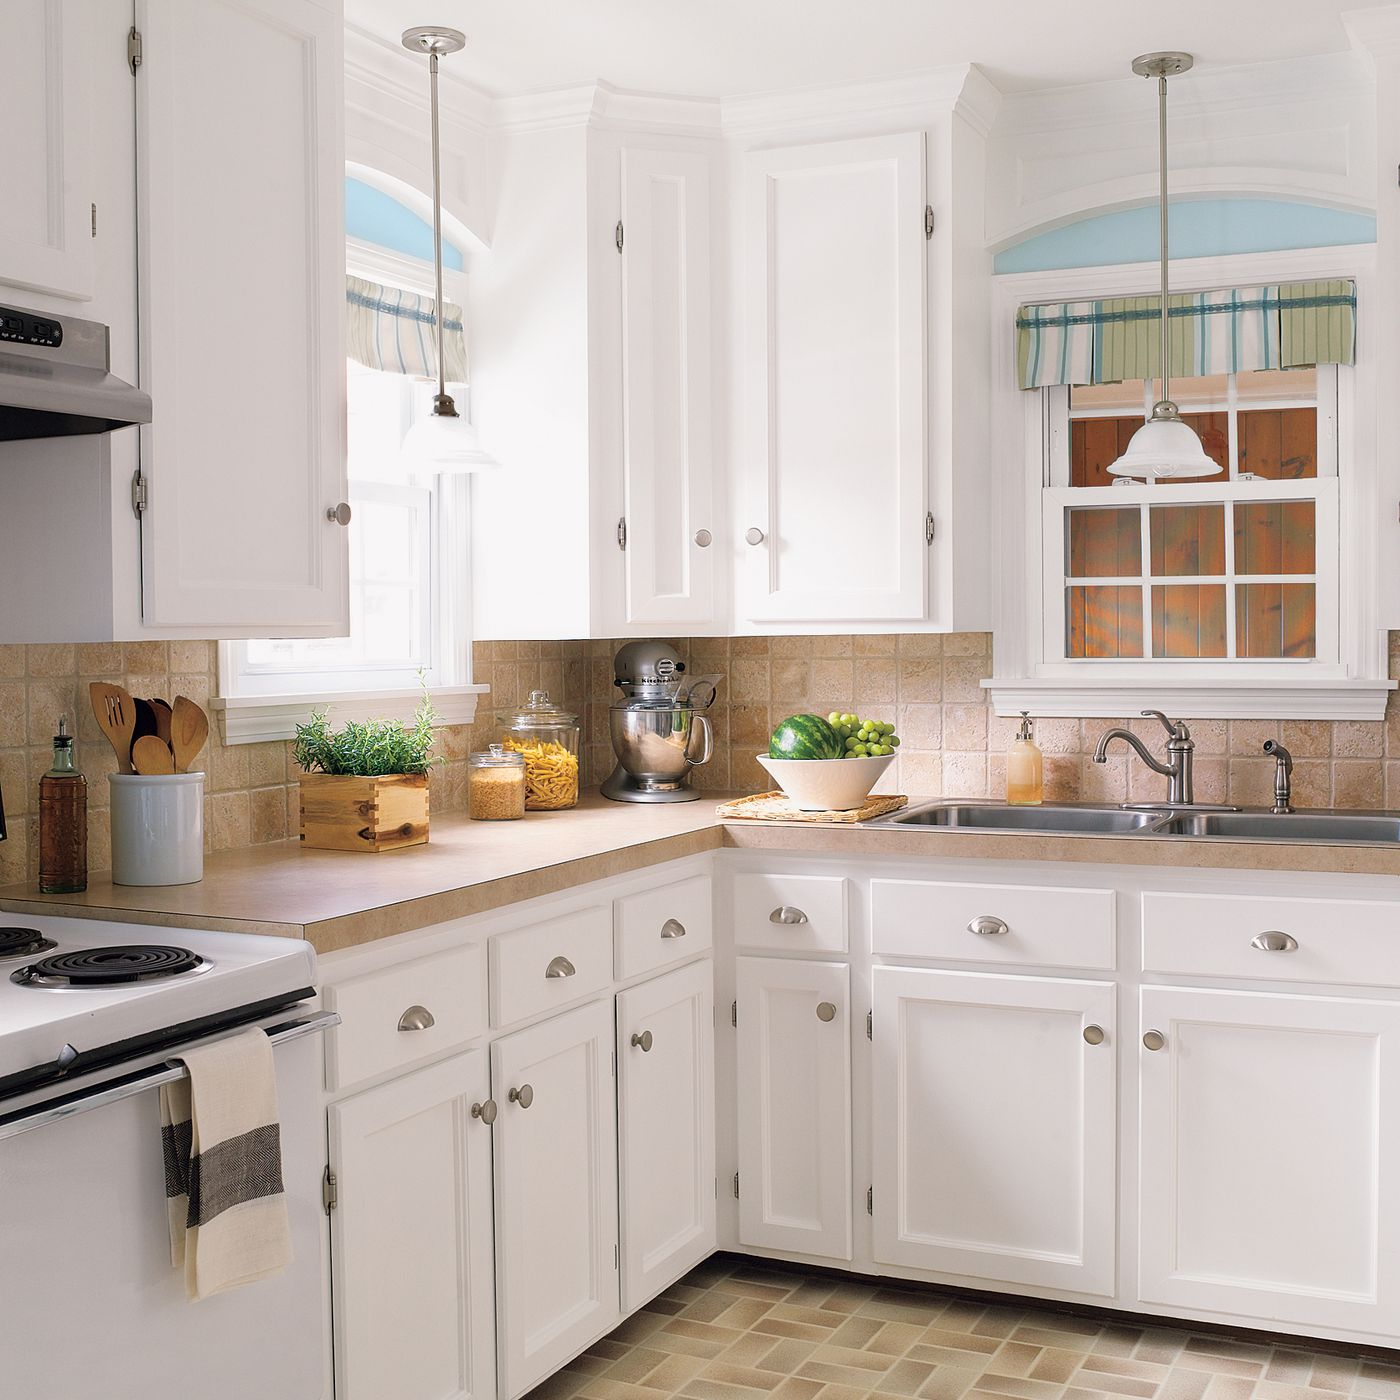 Top 10 Budget Kitchen and Bath Remodels - This Old House